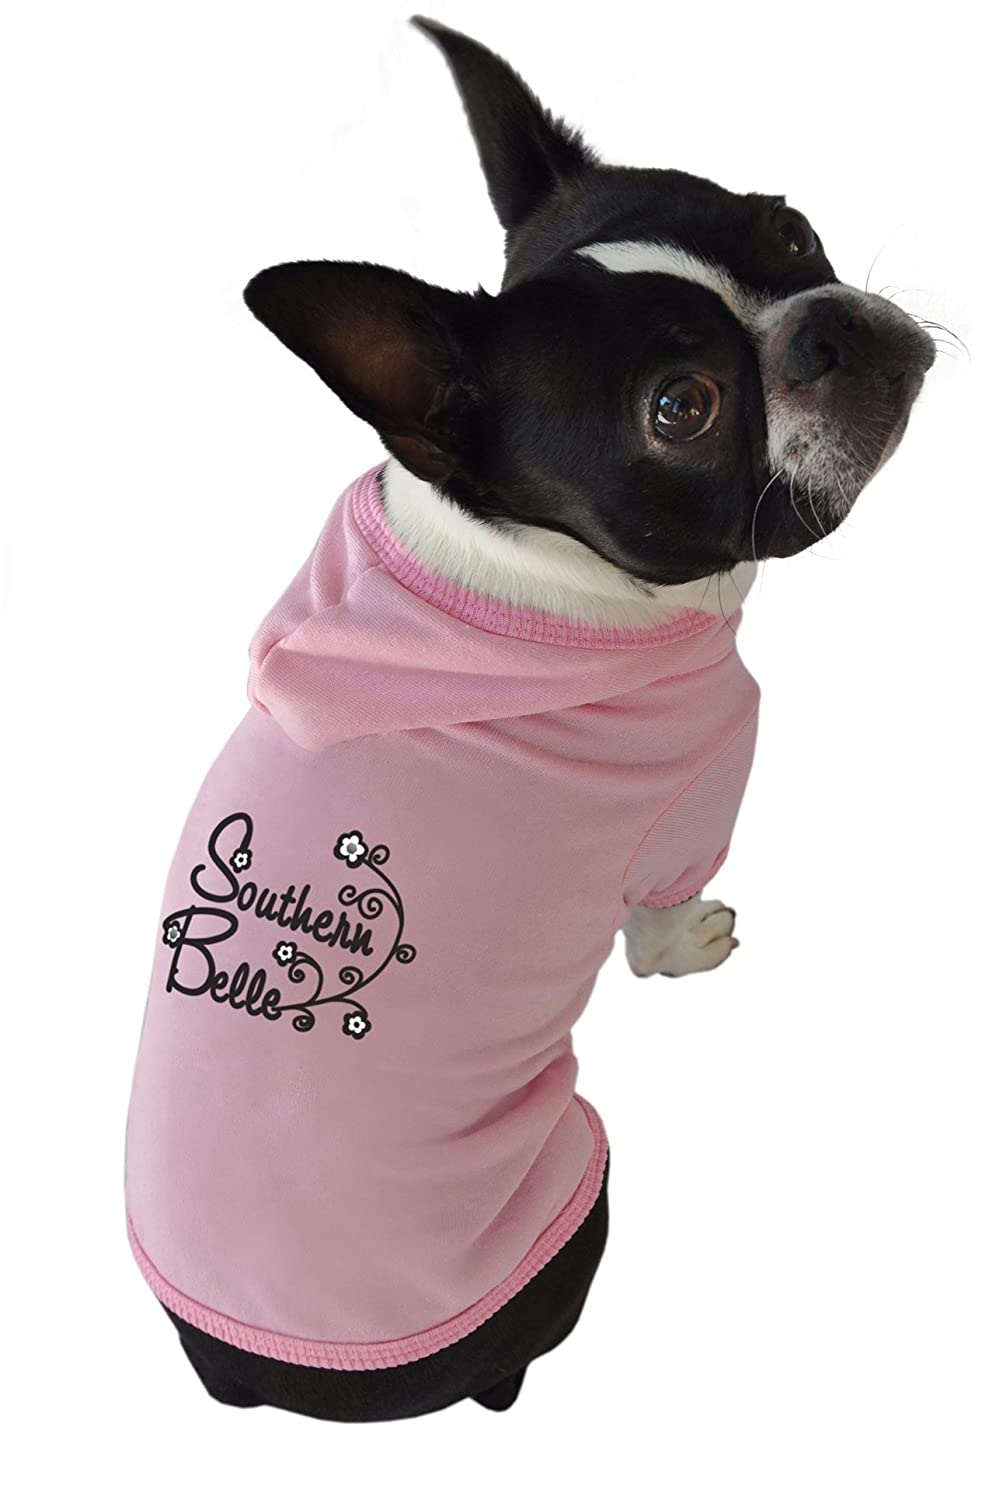 Ruff Ruff and Meow Dog Hoodie, Southern Belle, Pink, Extra-Small